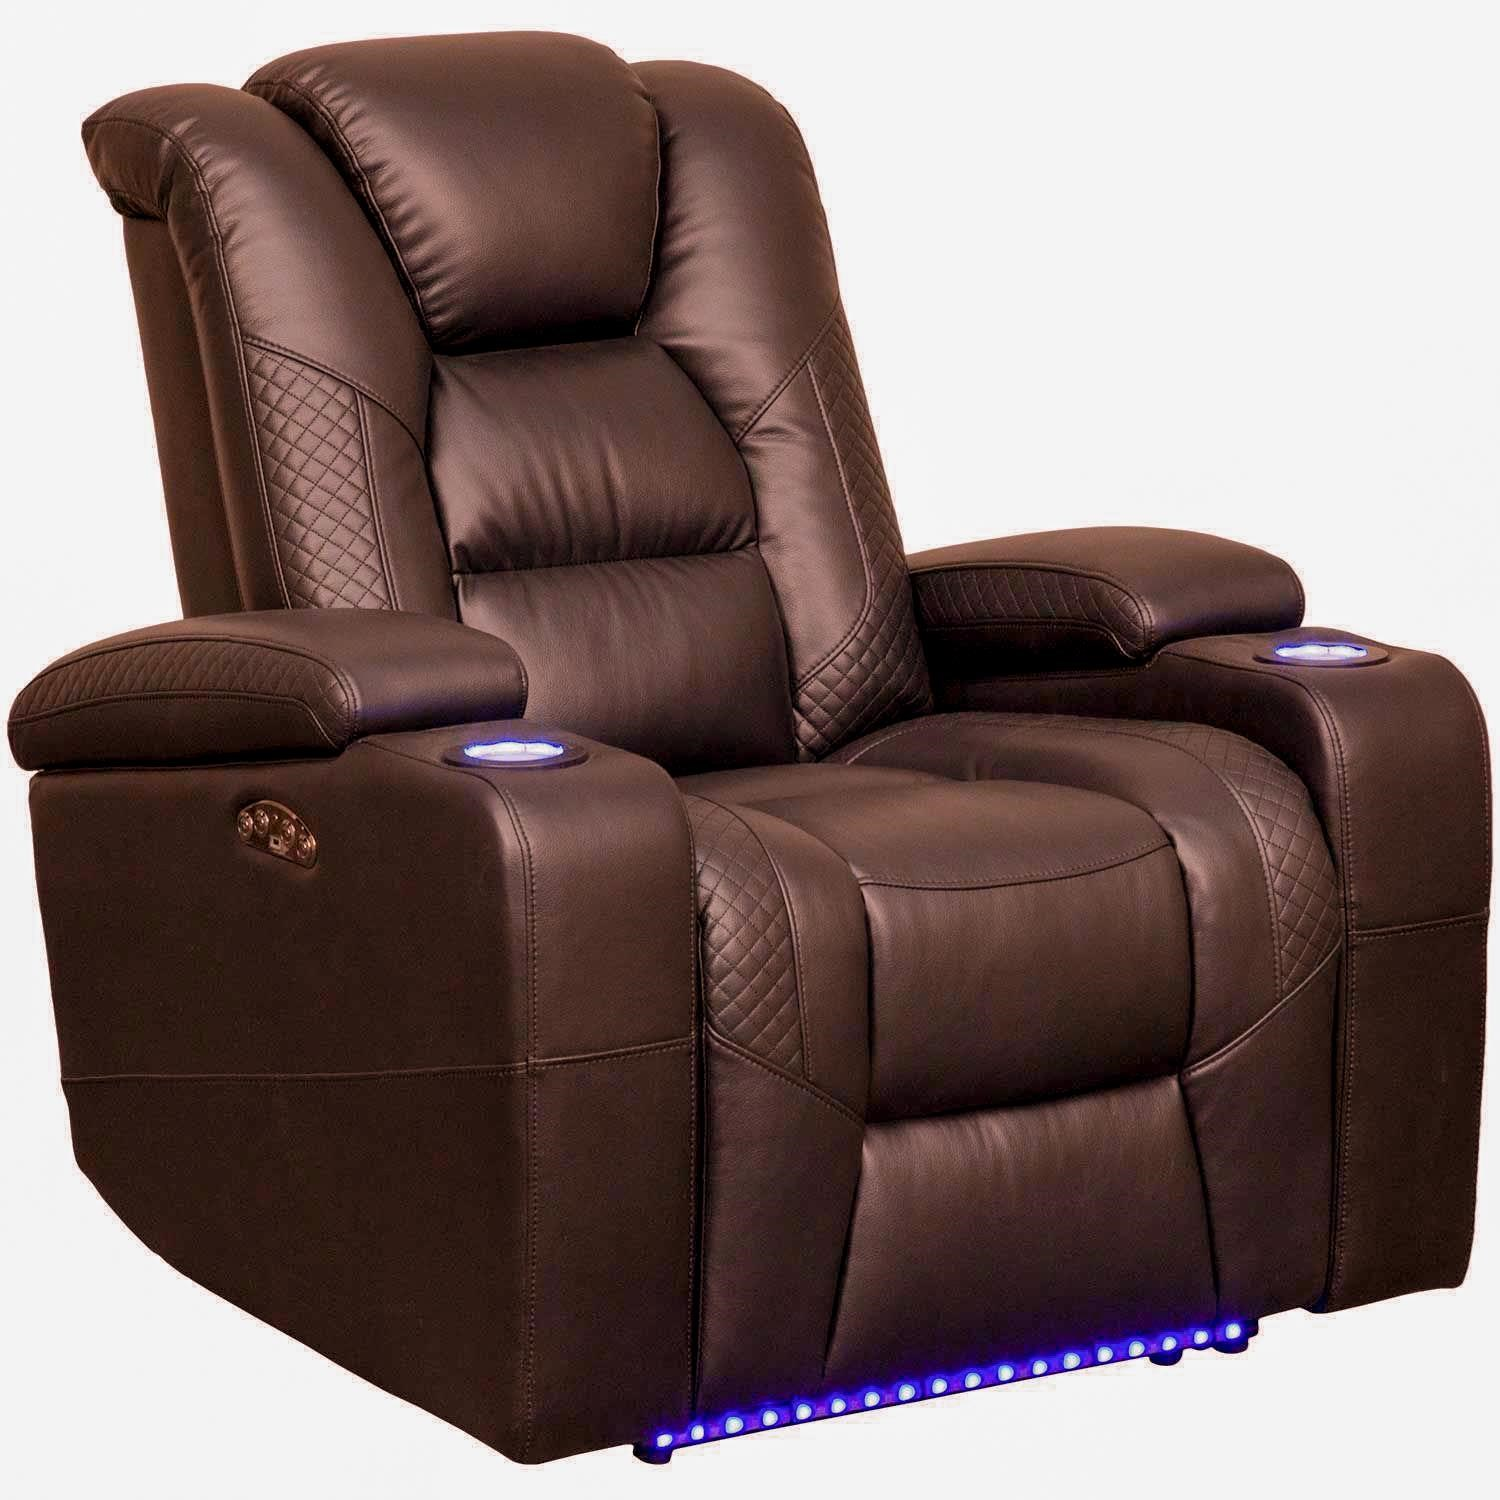 549 Power Reclining LED Recliner by Synergy Home Furnishings at Beck's Furniture